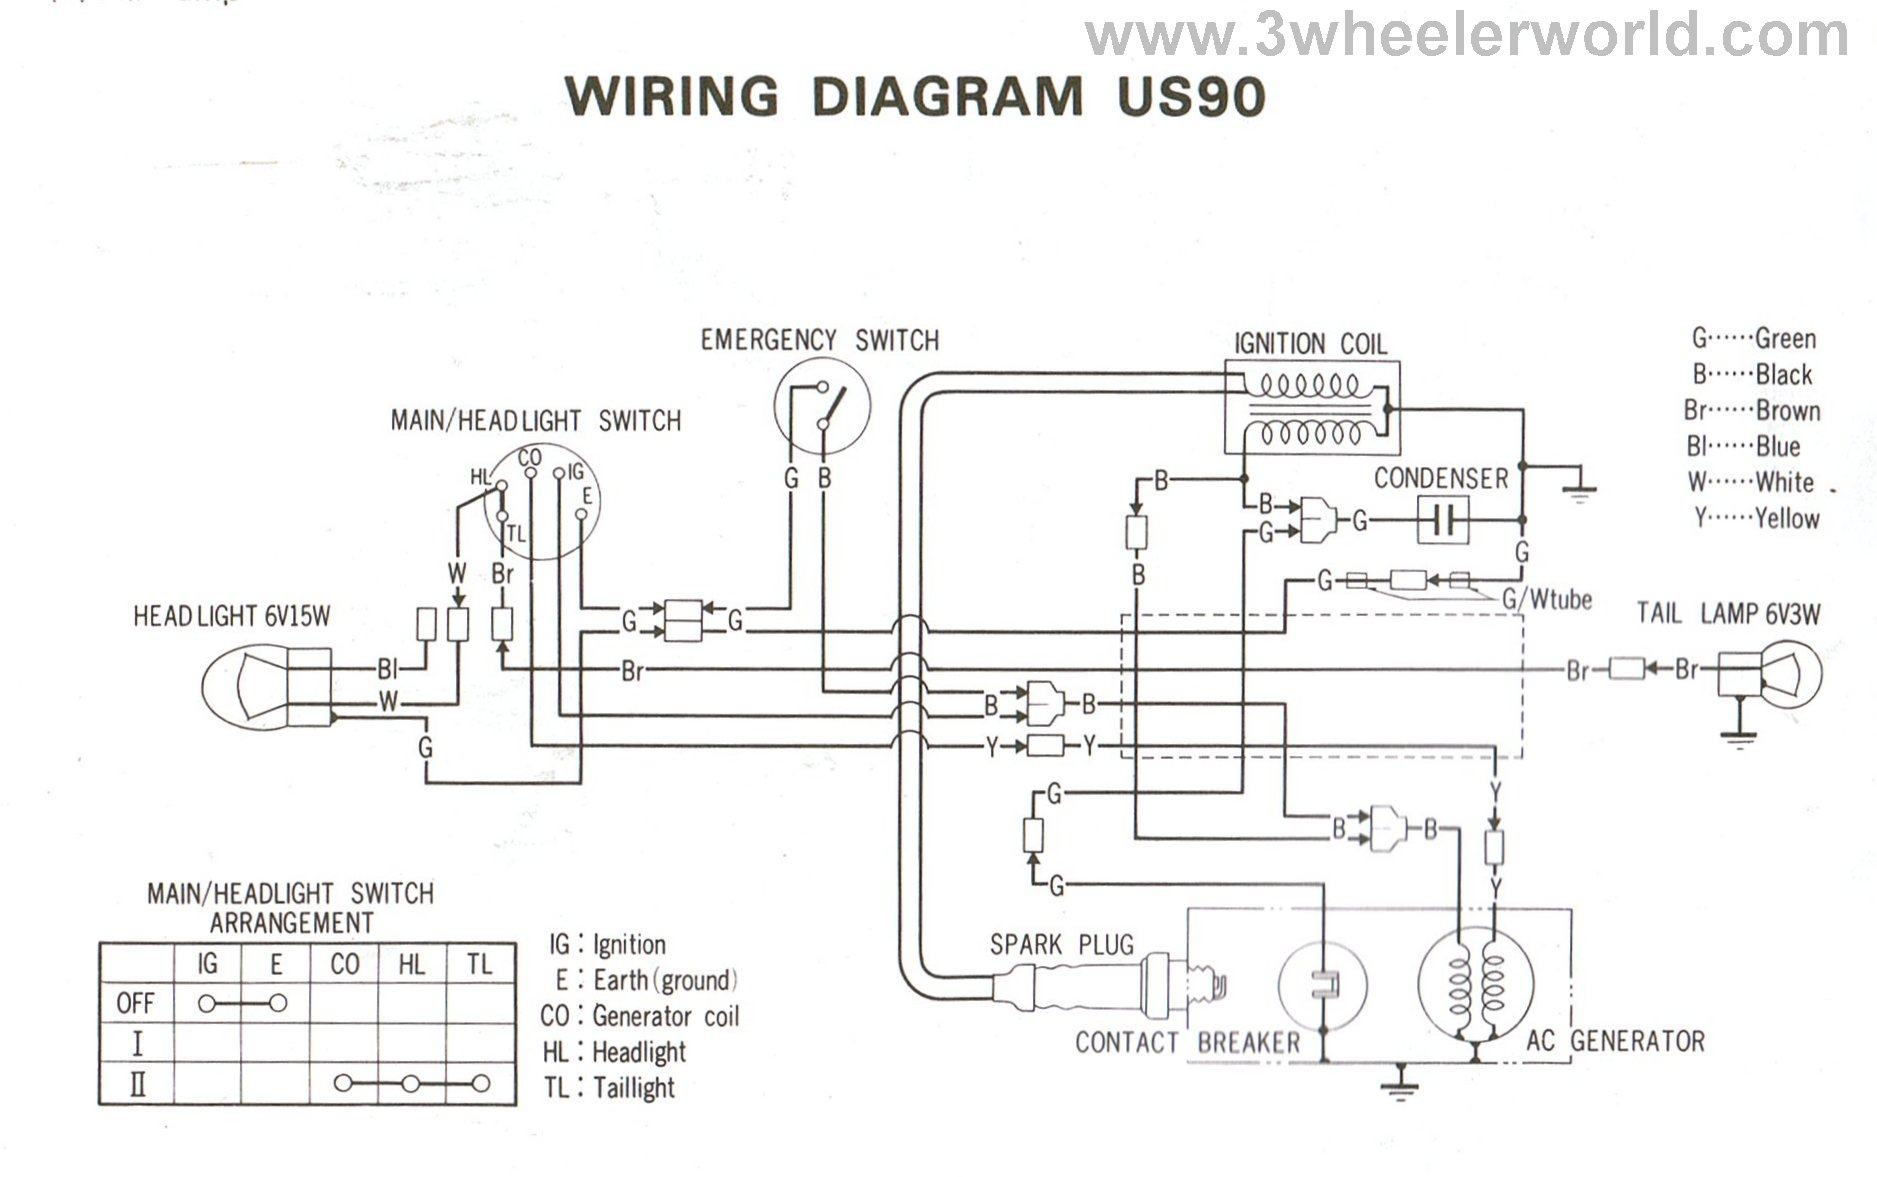 US90HM 3 wheeler world tech help honda wiring diagrams 2003 polaris predator 90 wiring diagram at readyjetset.co